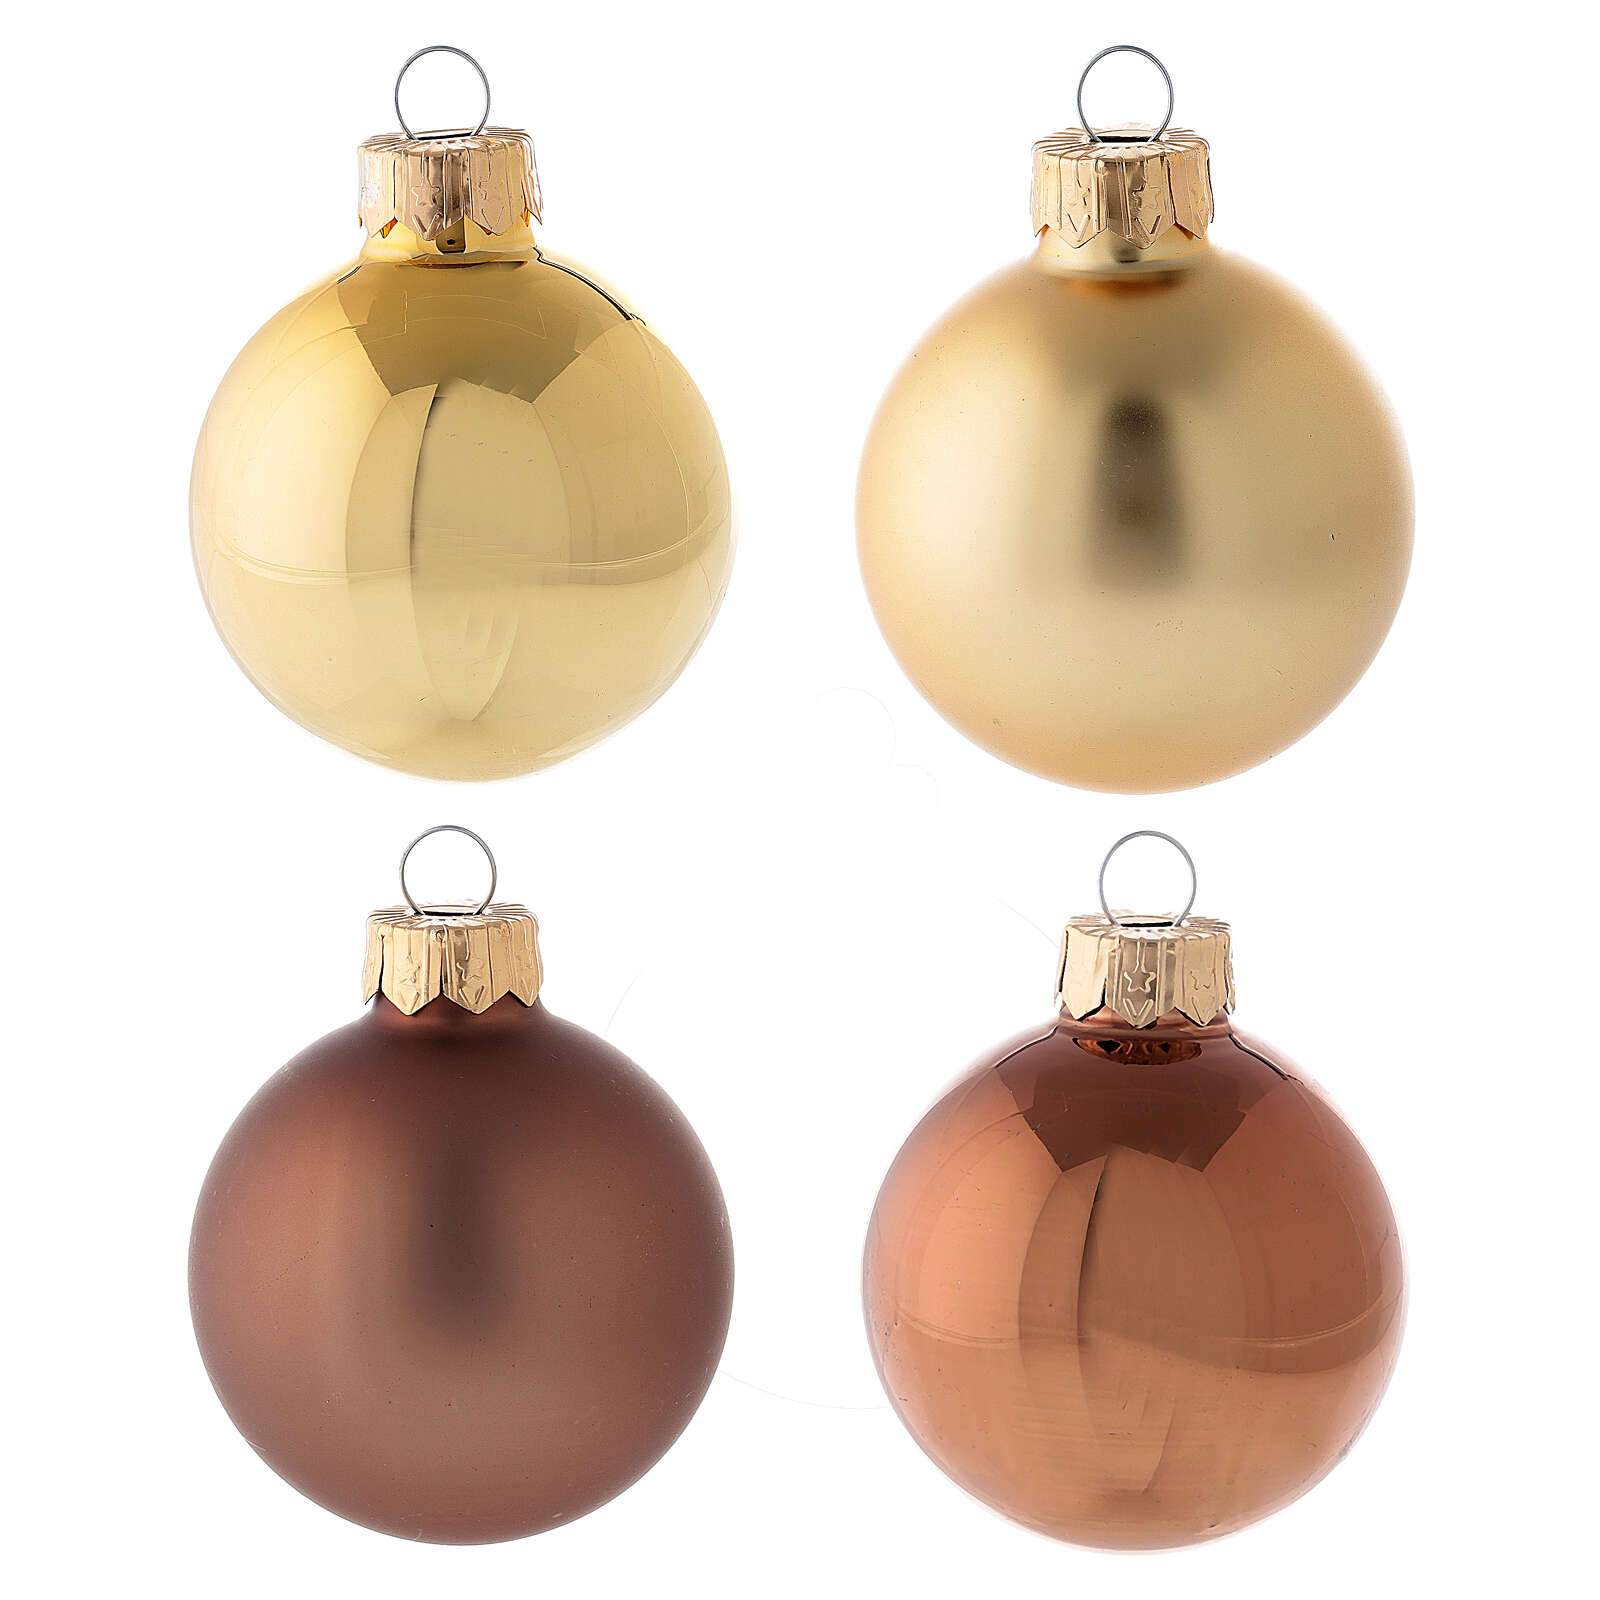 Christmas tree ornament set 15 pcs brown and gold 50 mm and finial tree topper 4